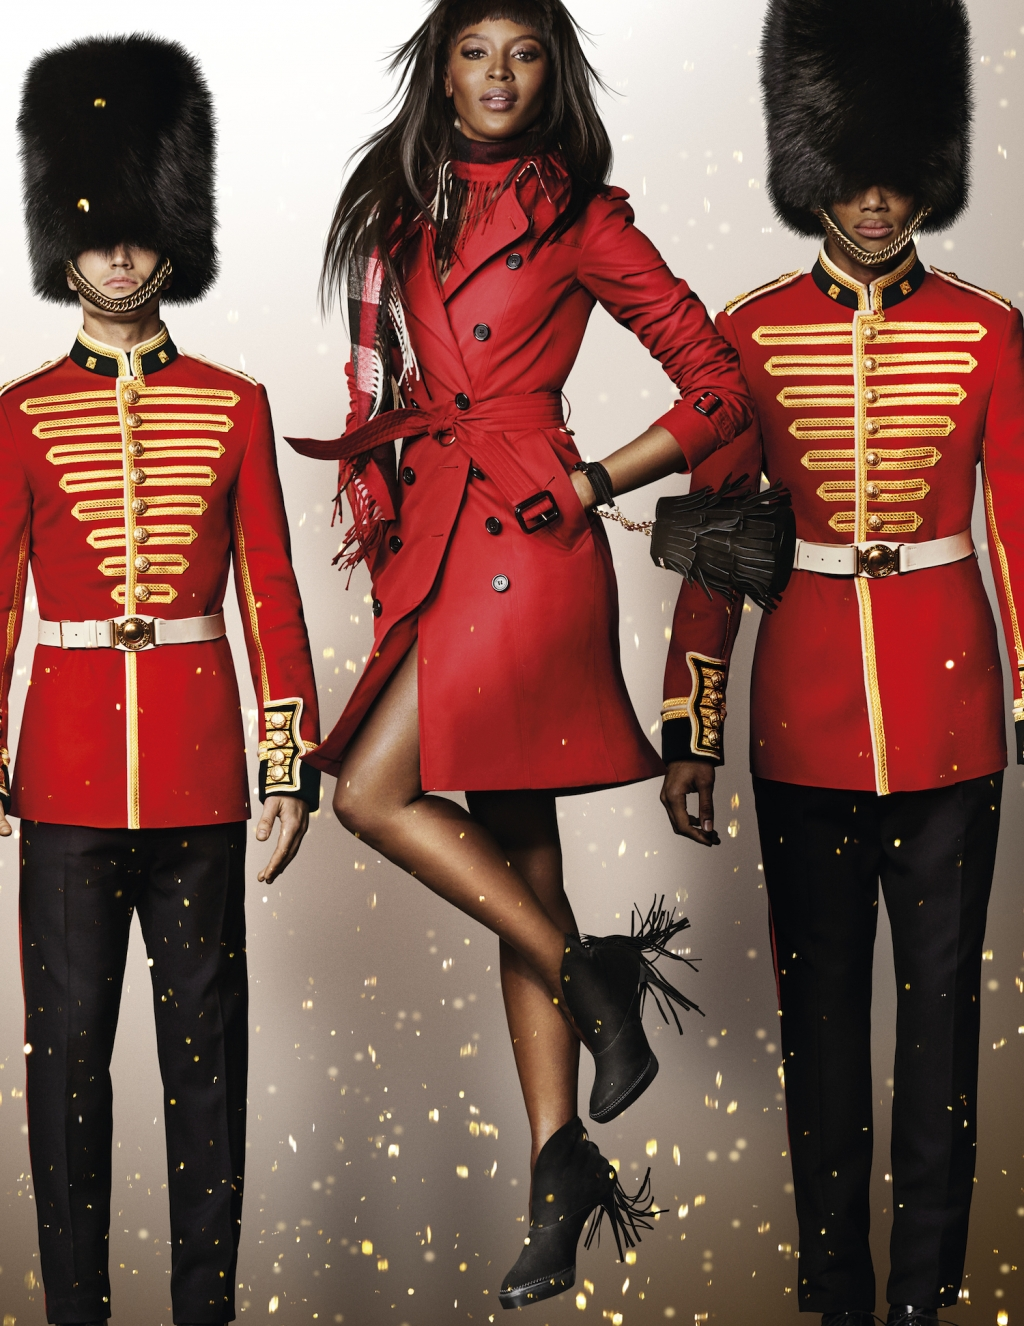 NAOMI_CAMPBELL_IN_THE_BURBERRY_FESTIVE_CAMPAIGN___SHOT_BY_MARIO_TESTINO